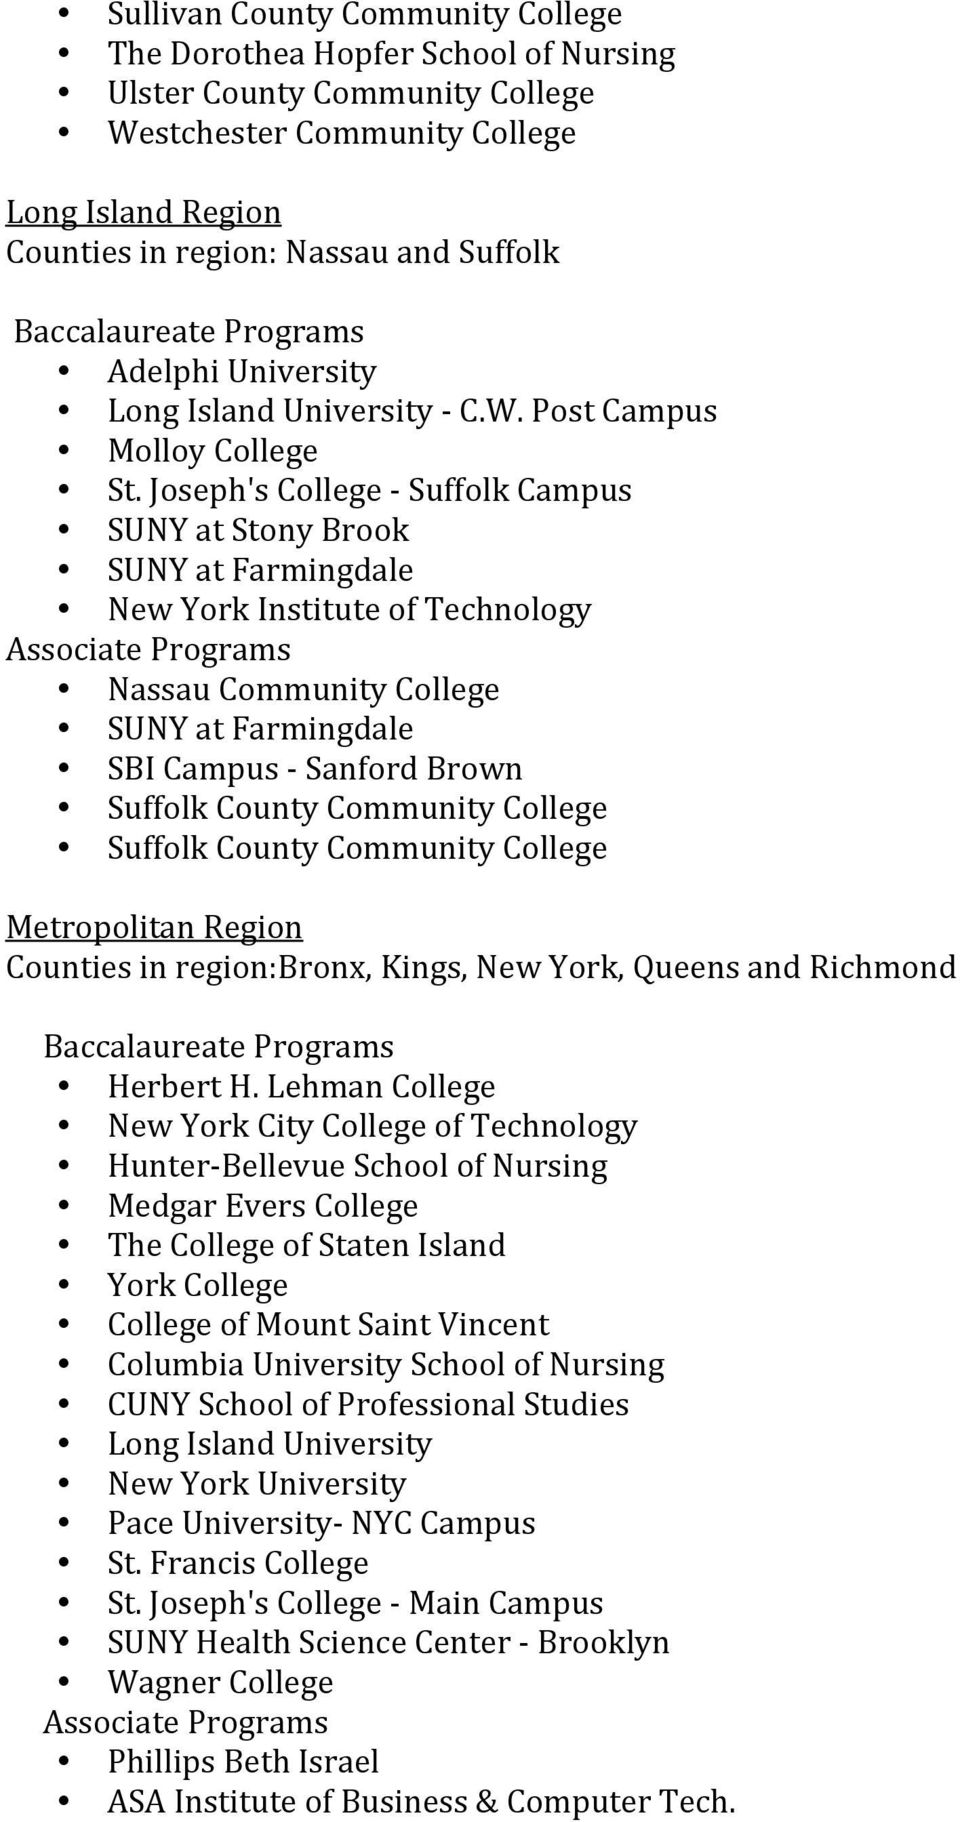 Joseph's College - Suffolk Campus SUNY at Stony Brook SUNY at Farmingdale New York Institute of Technology Nassau Community College SUNY at Farmingdale SBI Campus - Sanford Brown Suffolk County